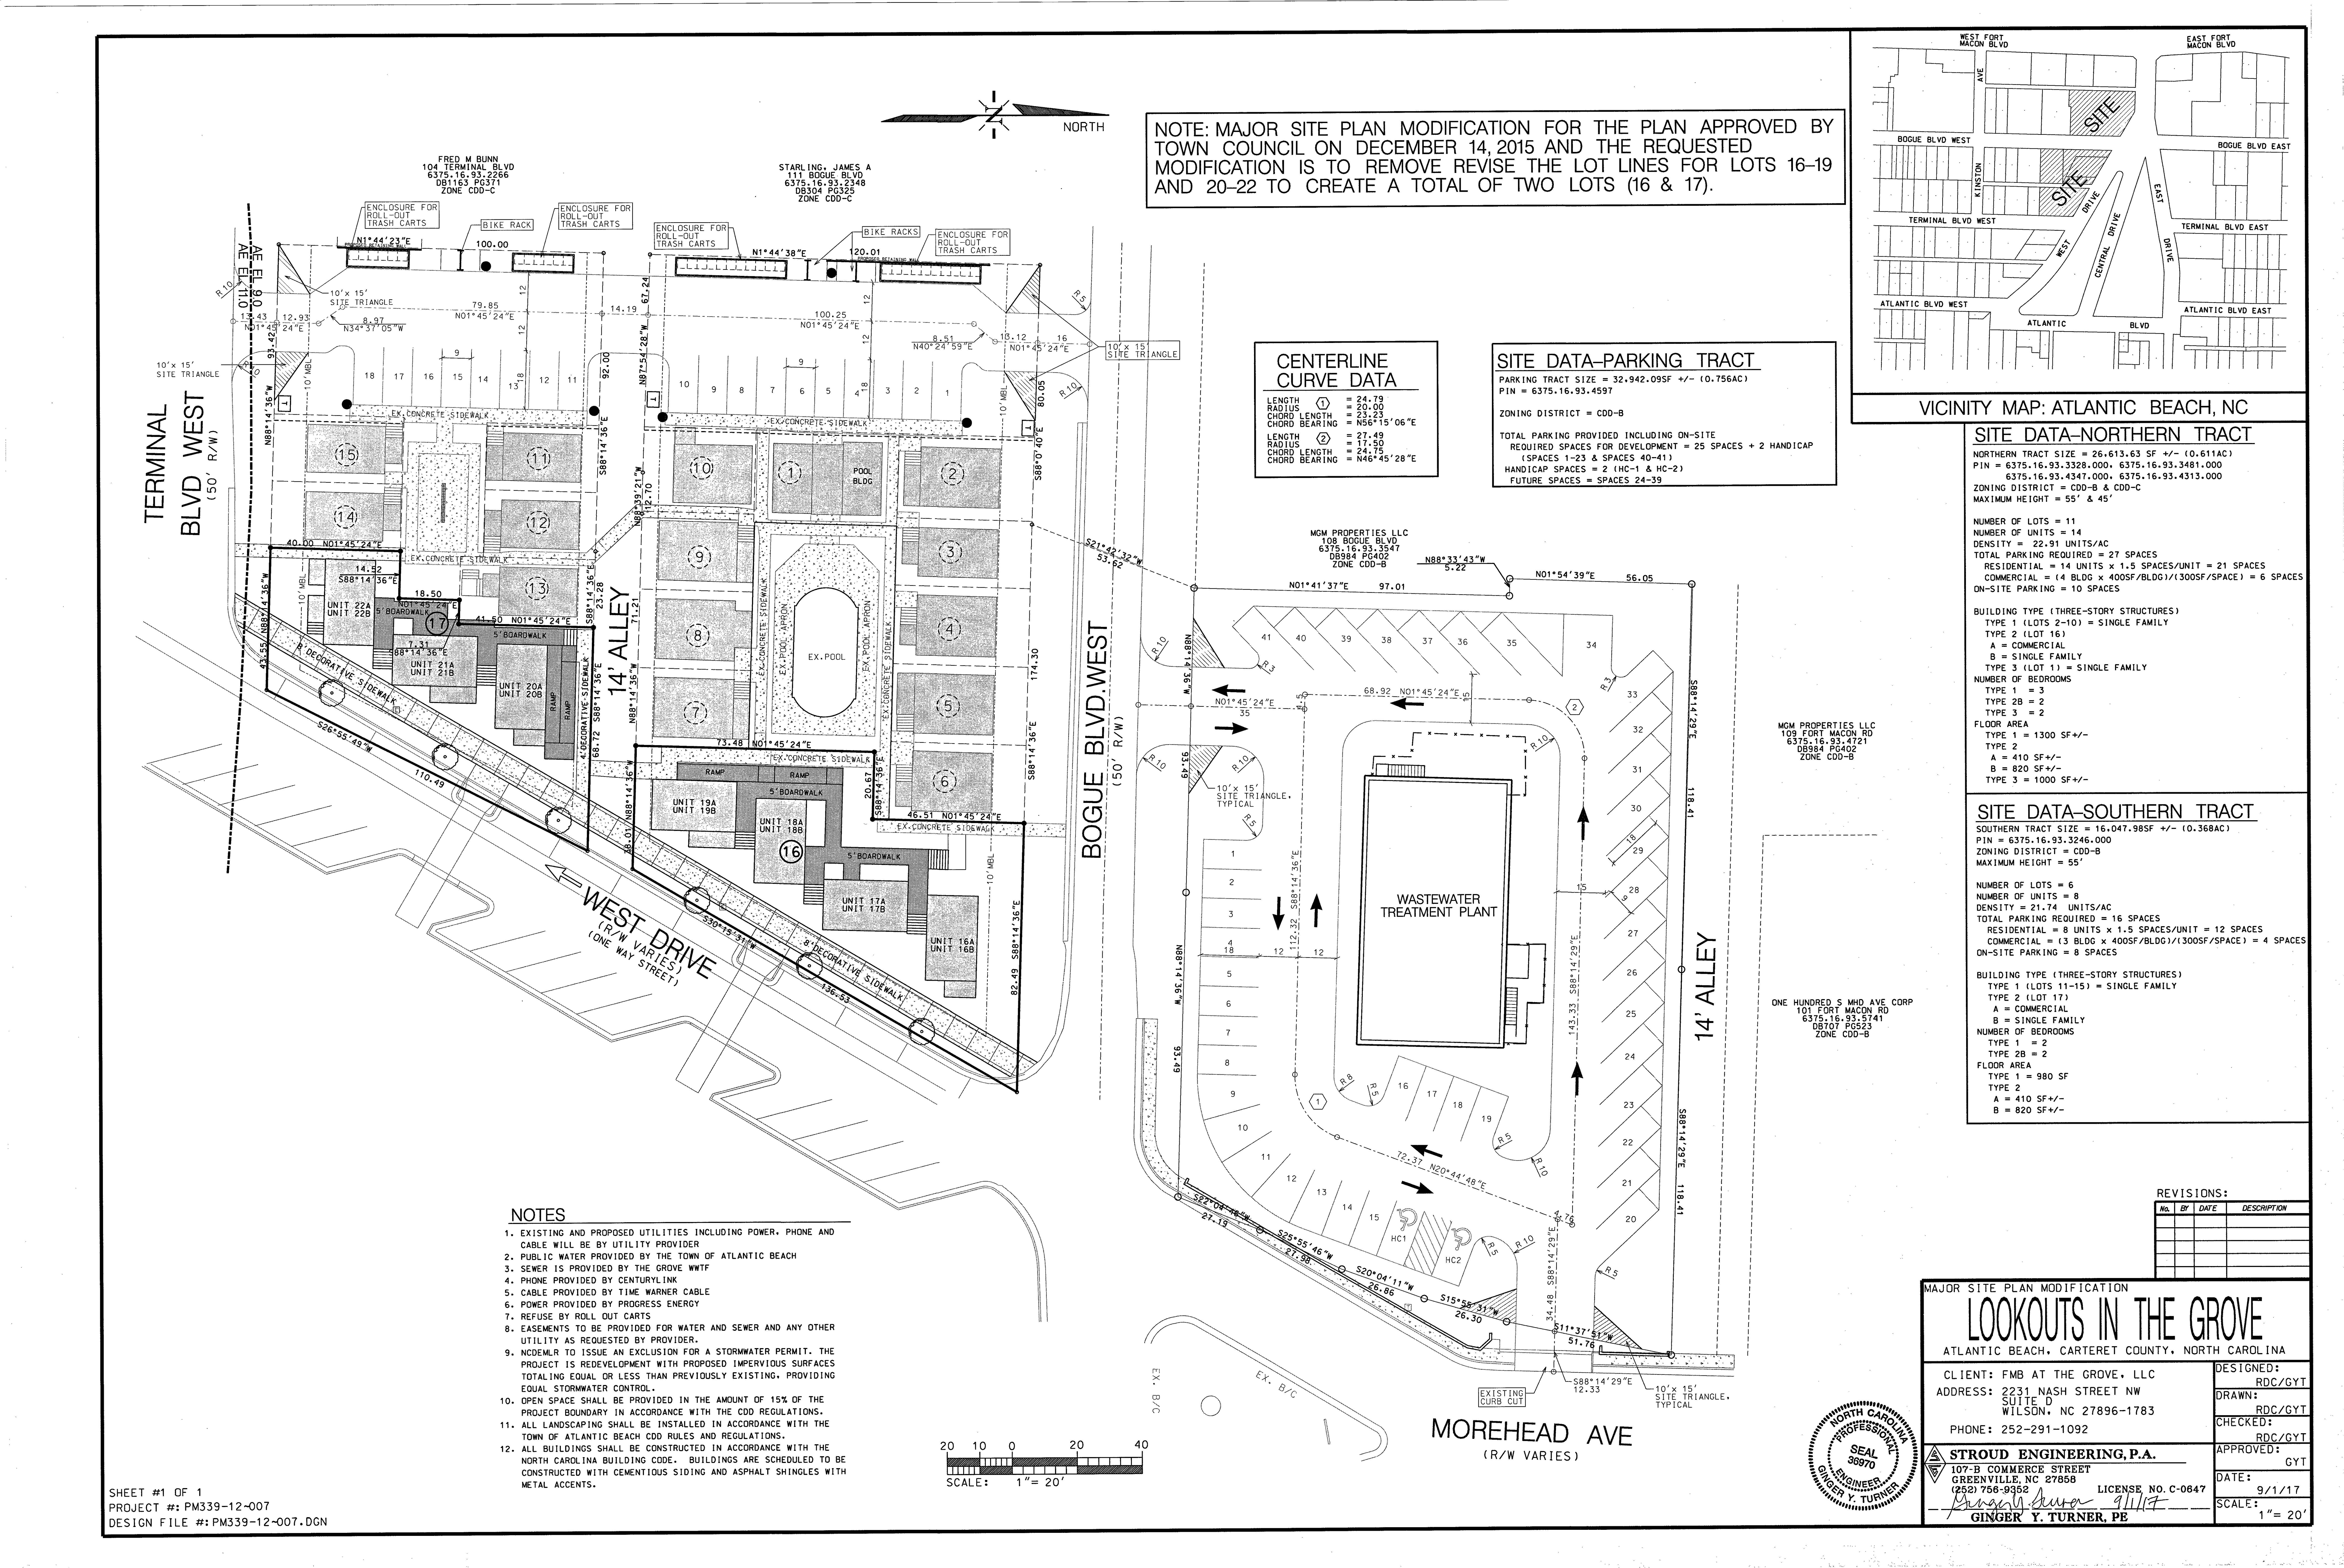 PM339-12 Lookouts Master Site Plan Mod 2017.09.01